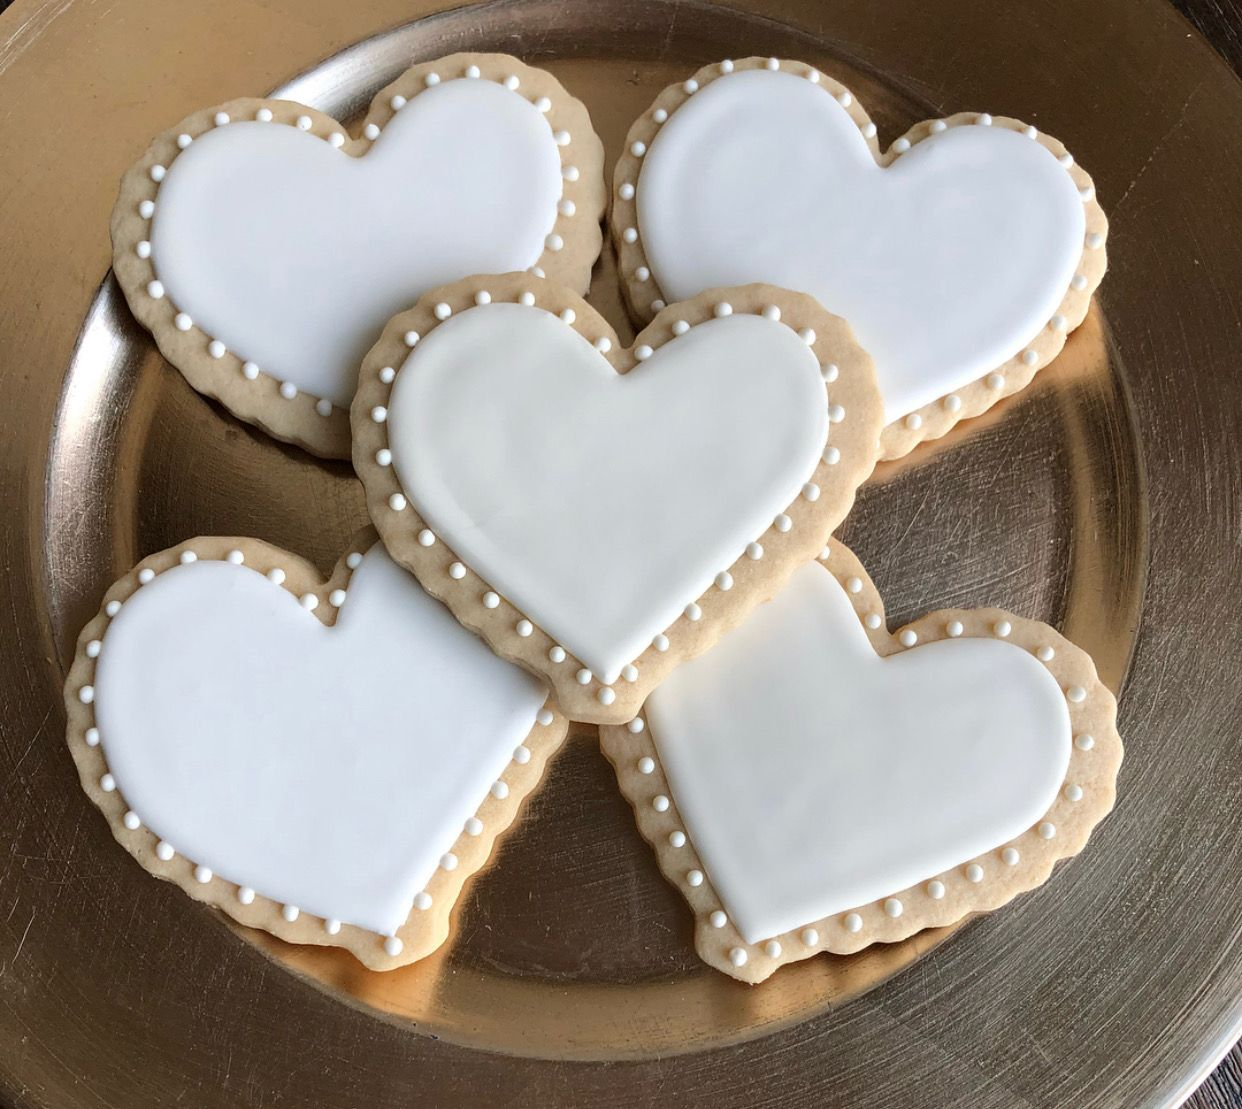 Pearls /& Lace Themed Custom Sugar Cookies FREE SHIPPING!